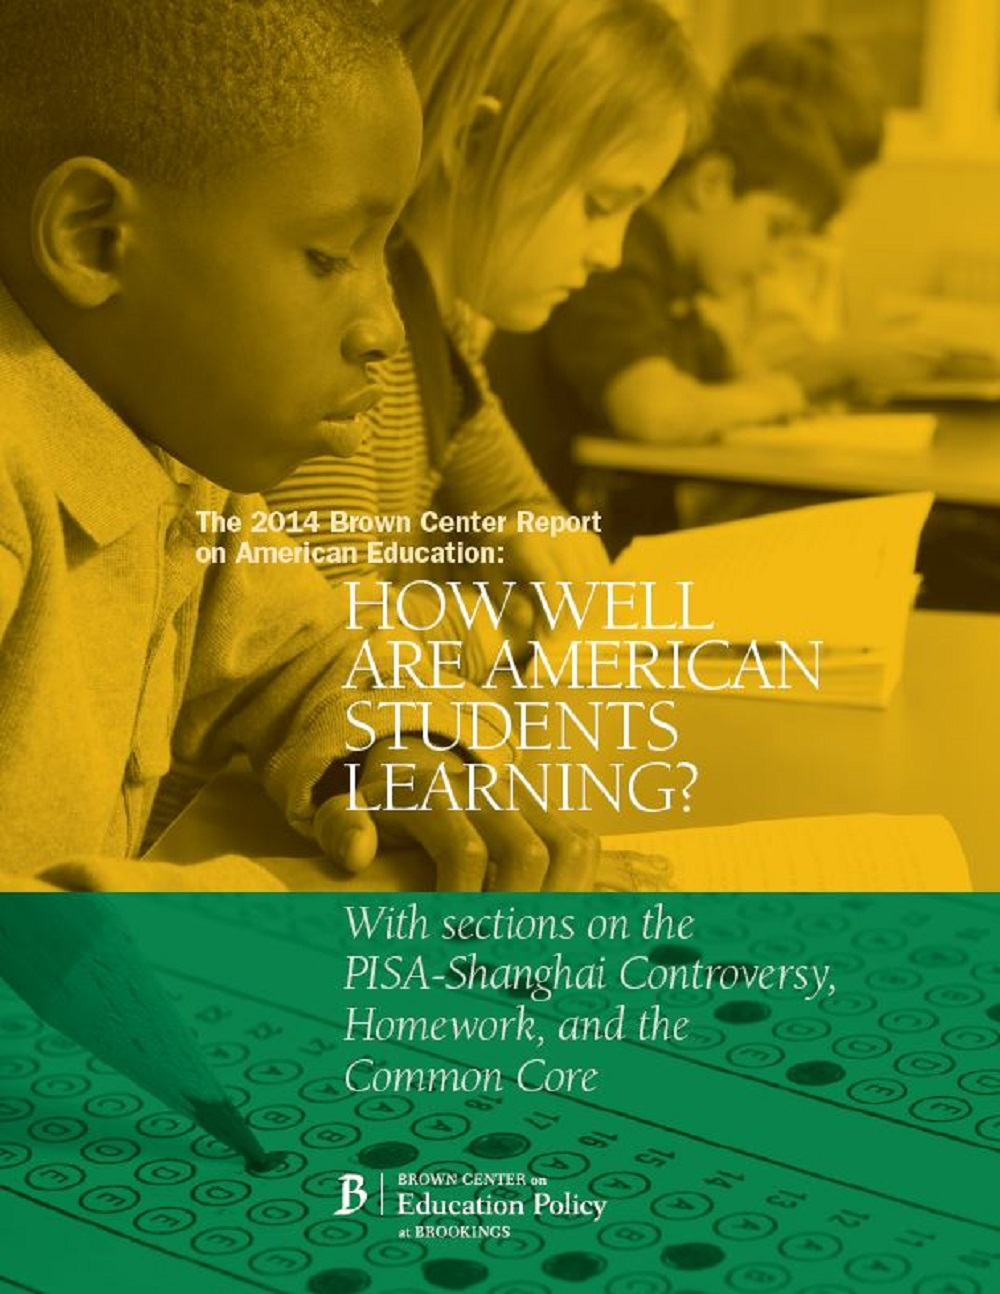 2014 Brown Center Report on American Education: How Well Are American Students Learning?